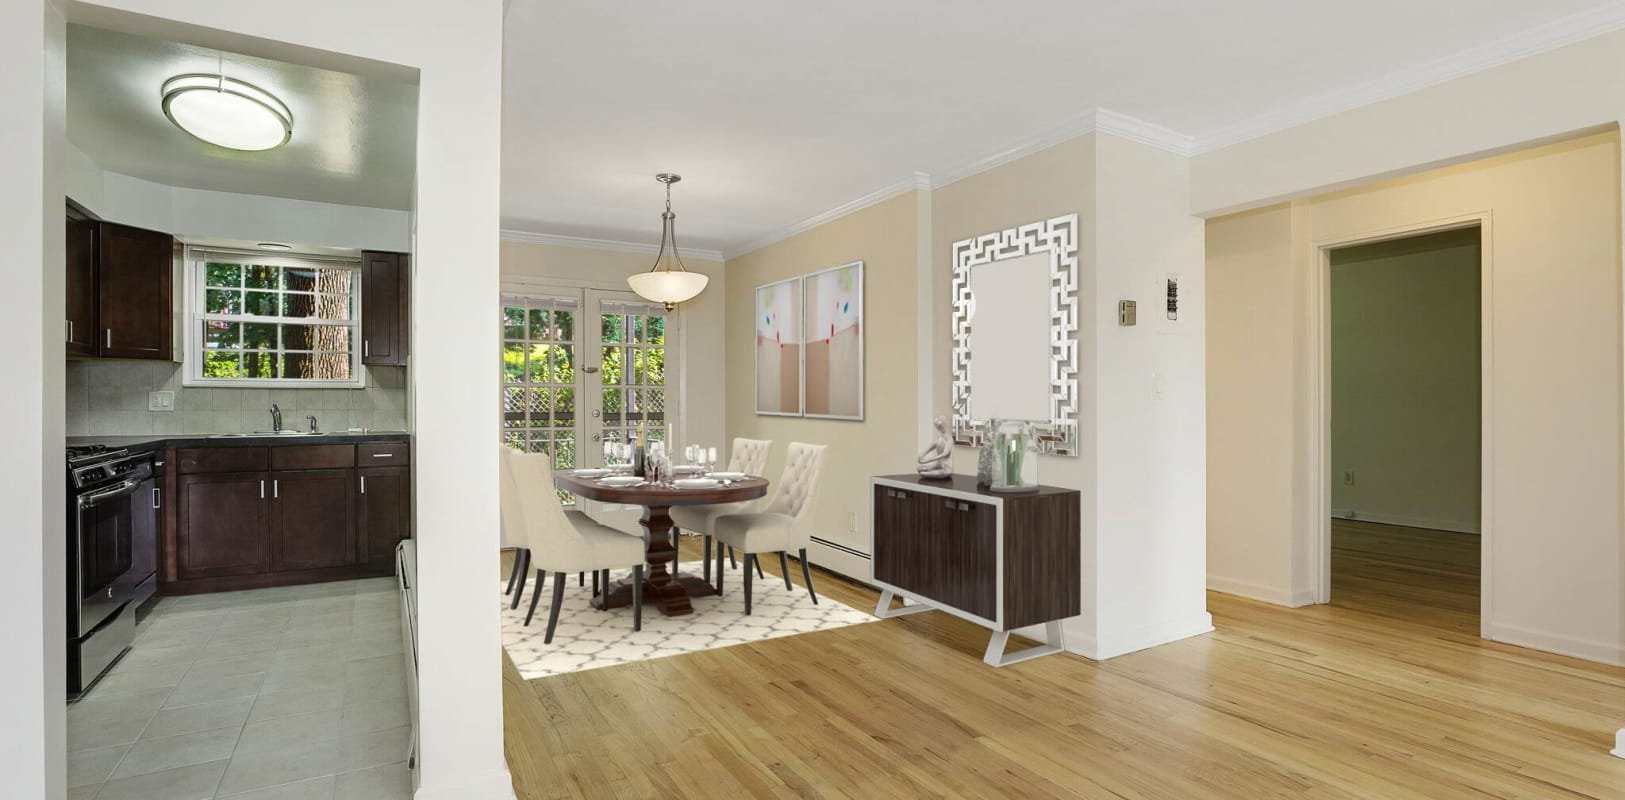 Kitchen and dining room at Parkway East Apartments in Caldwell, New Jersey